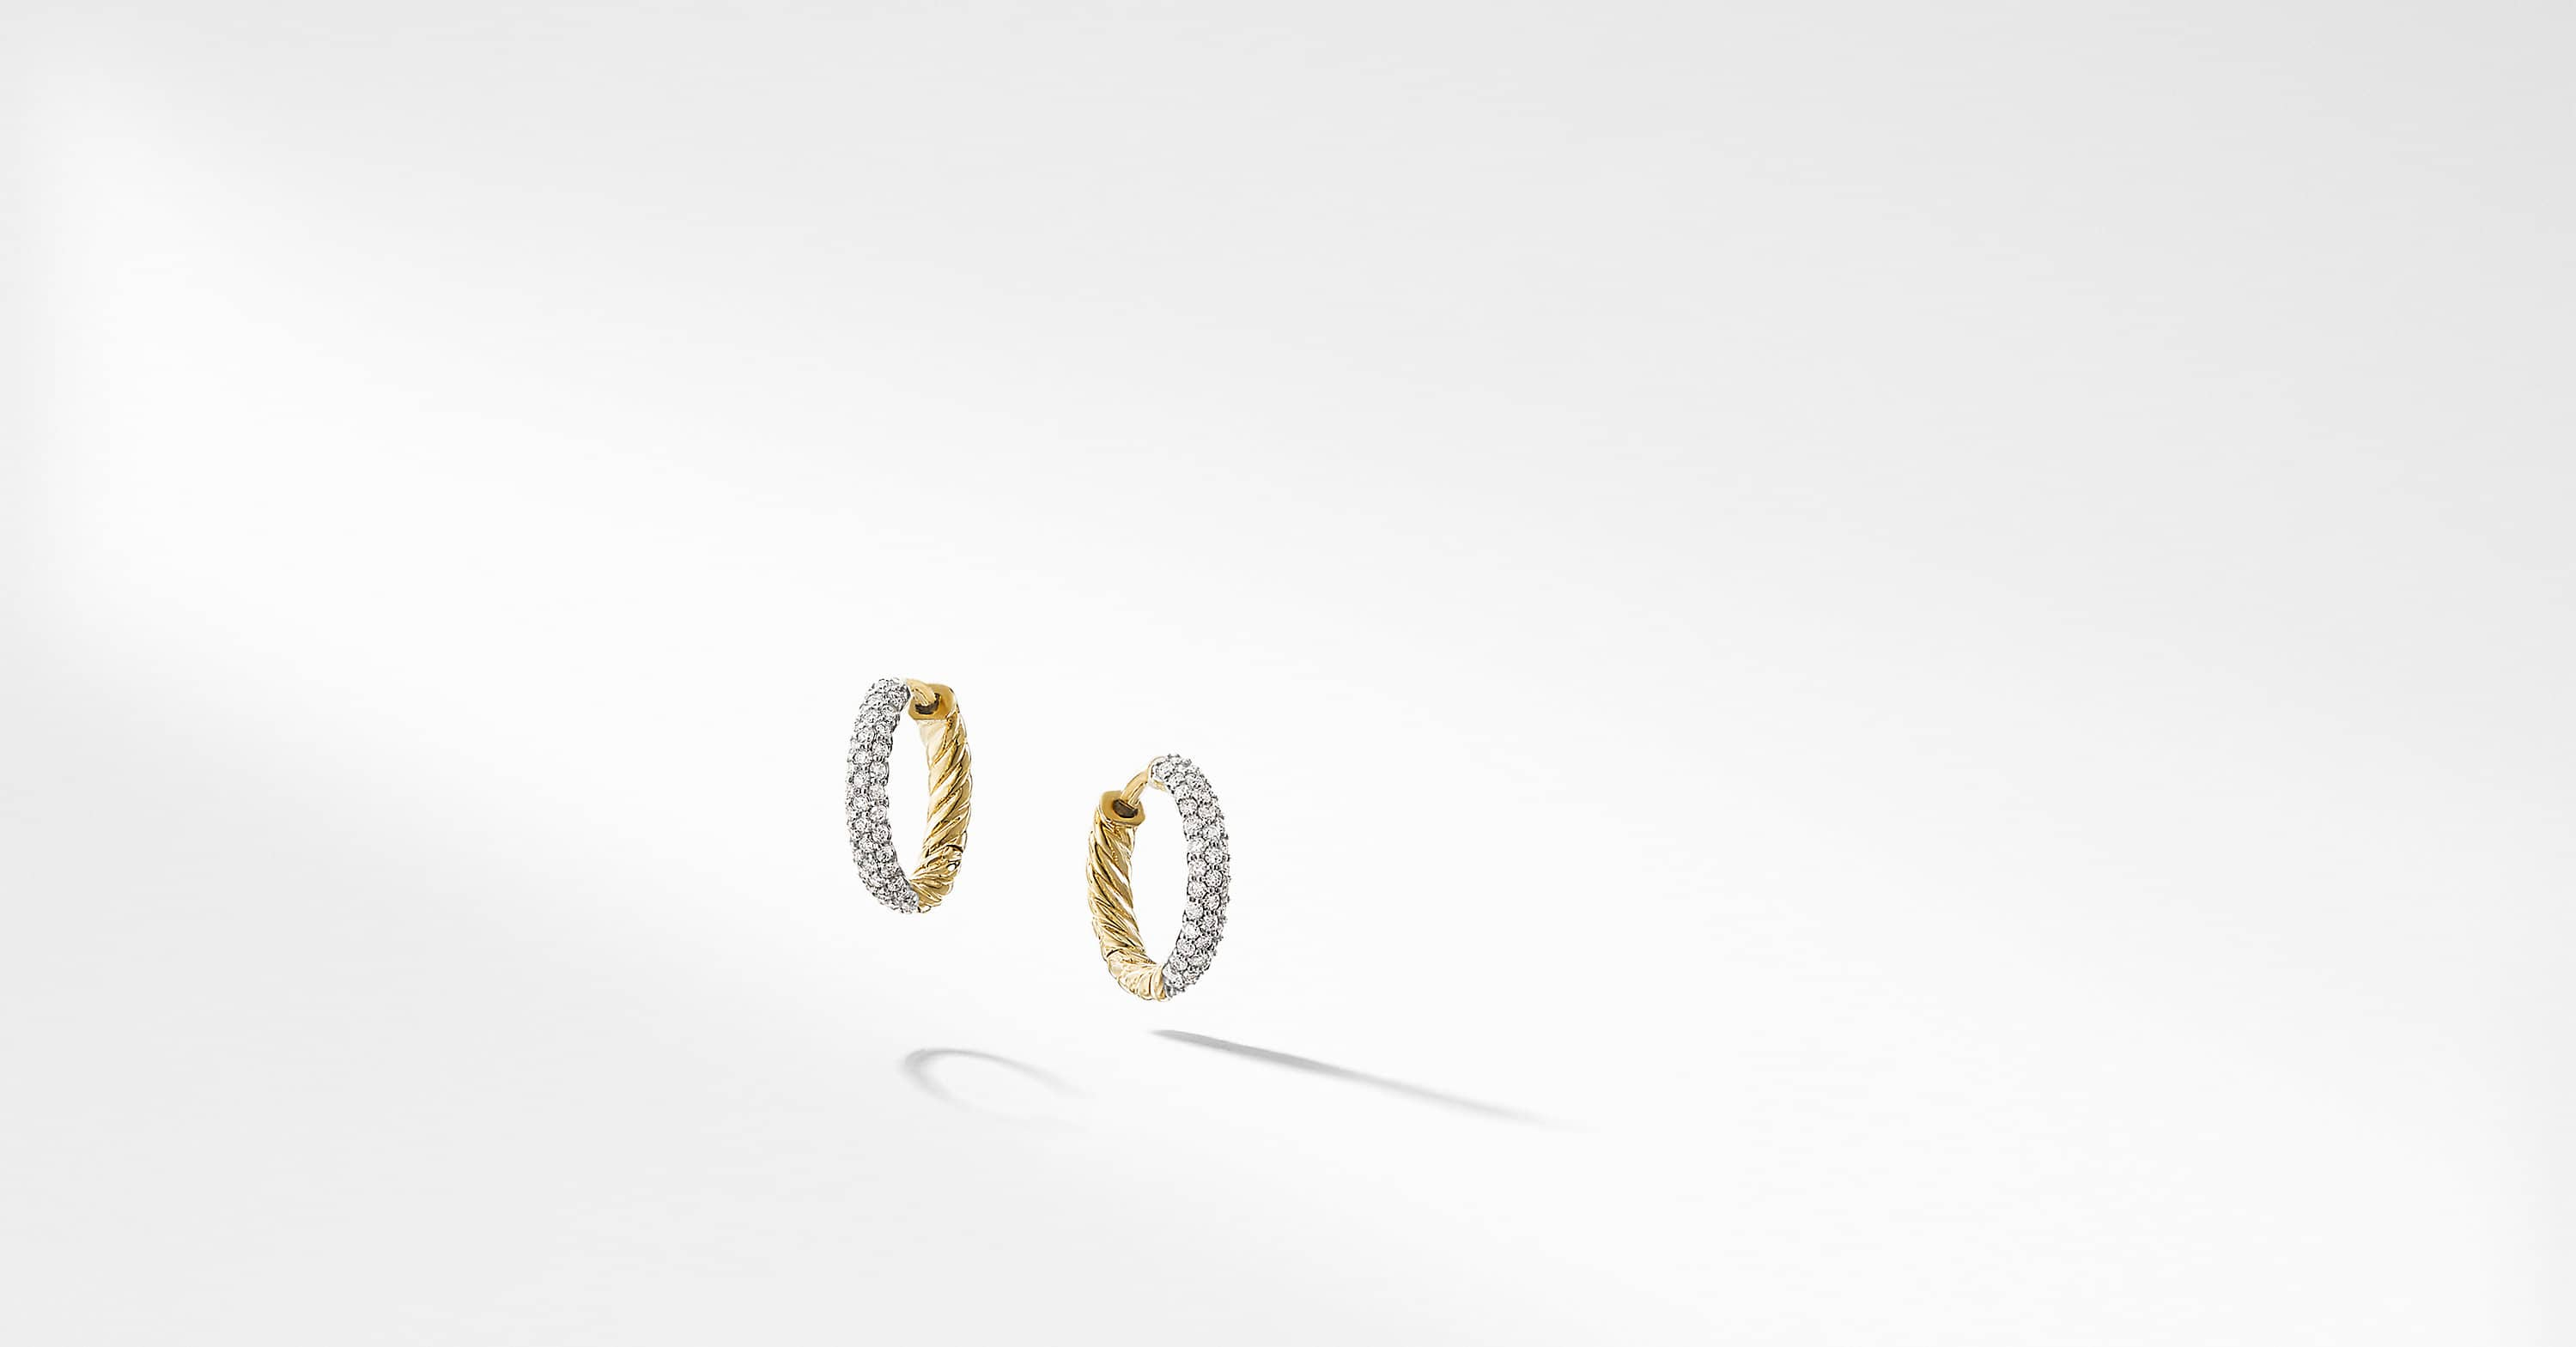 Petite Pave Huggie Hoop Earrings with Diamonds in 18K Gold